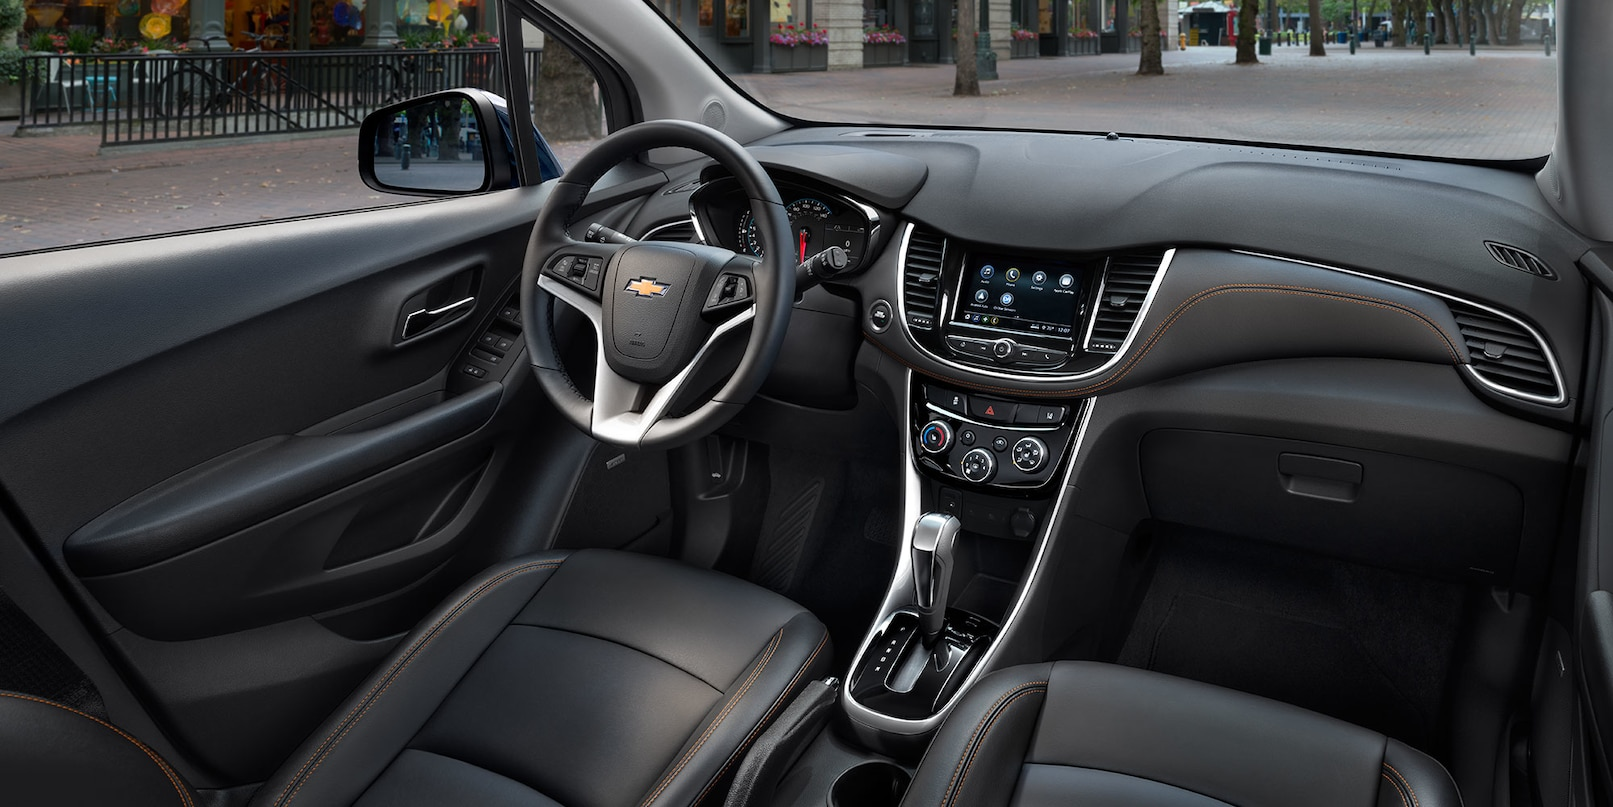 Superior Cabin Technology in the 2018 Trax